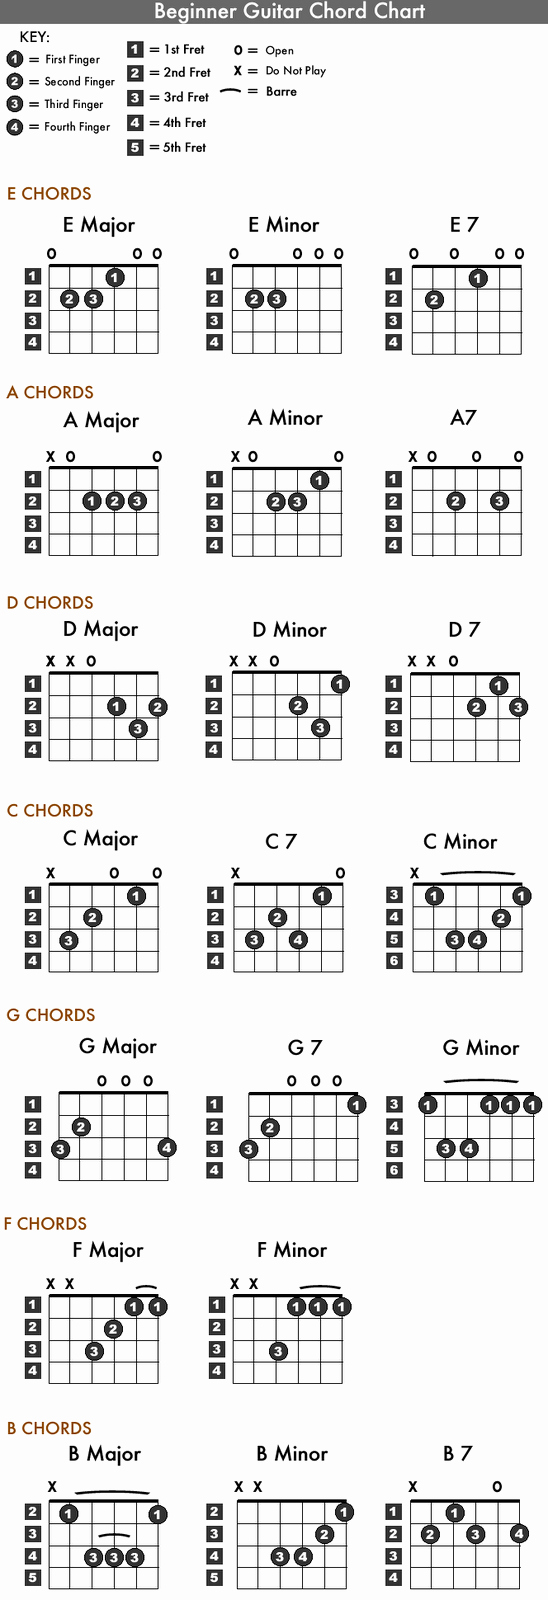 Basic Guitar Chord Chart Unique Guitar Gyan Beginner Guitar Chord Chart